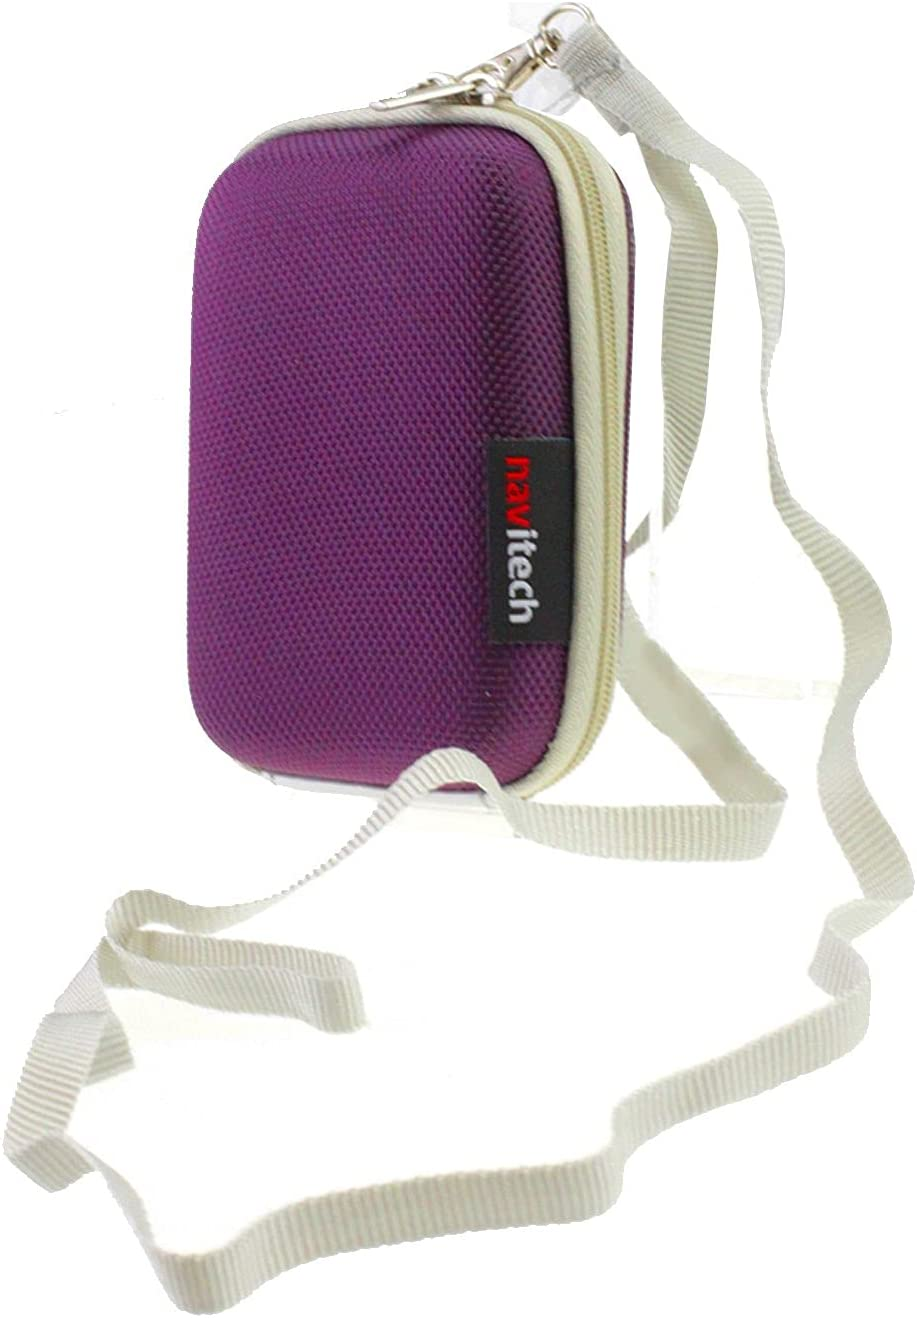 Navitech famous Purple Hard Carry Case with Cor AlcoMate Selling Compatible The